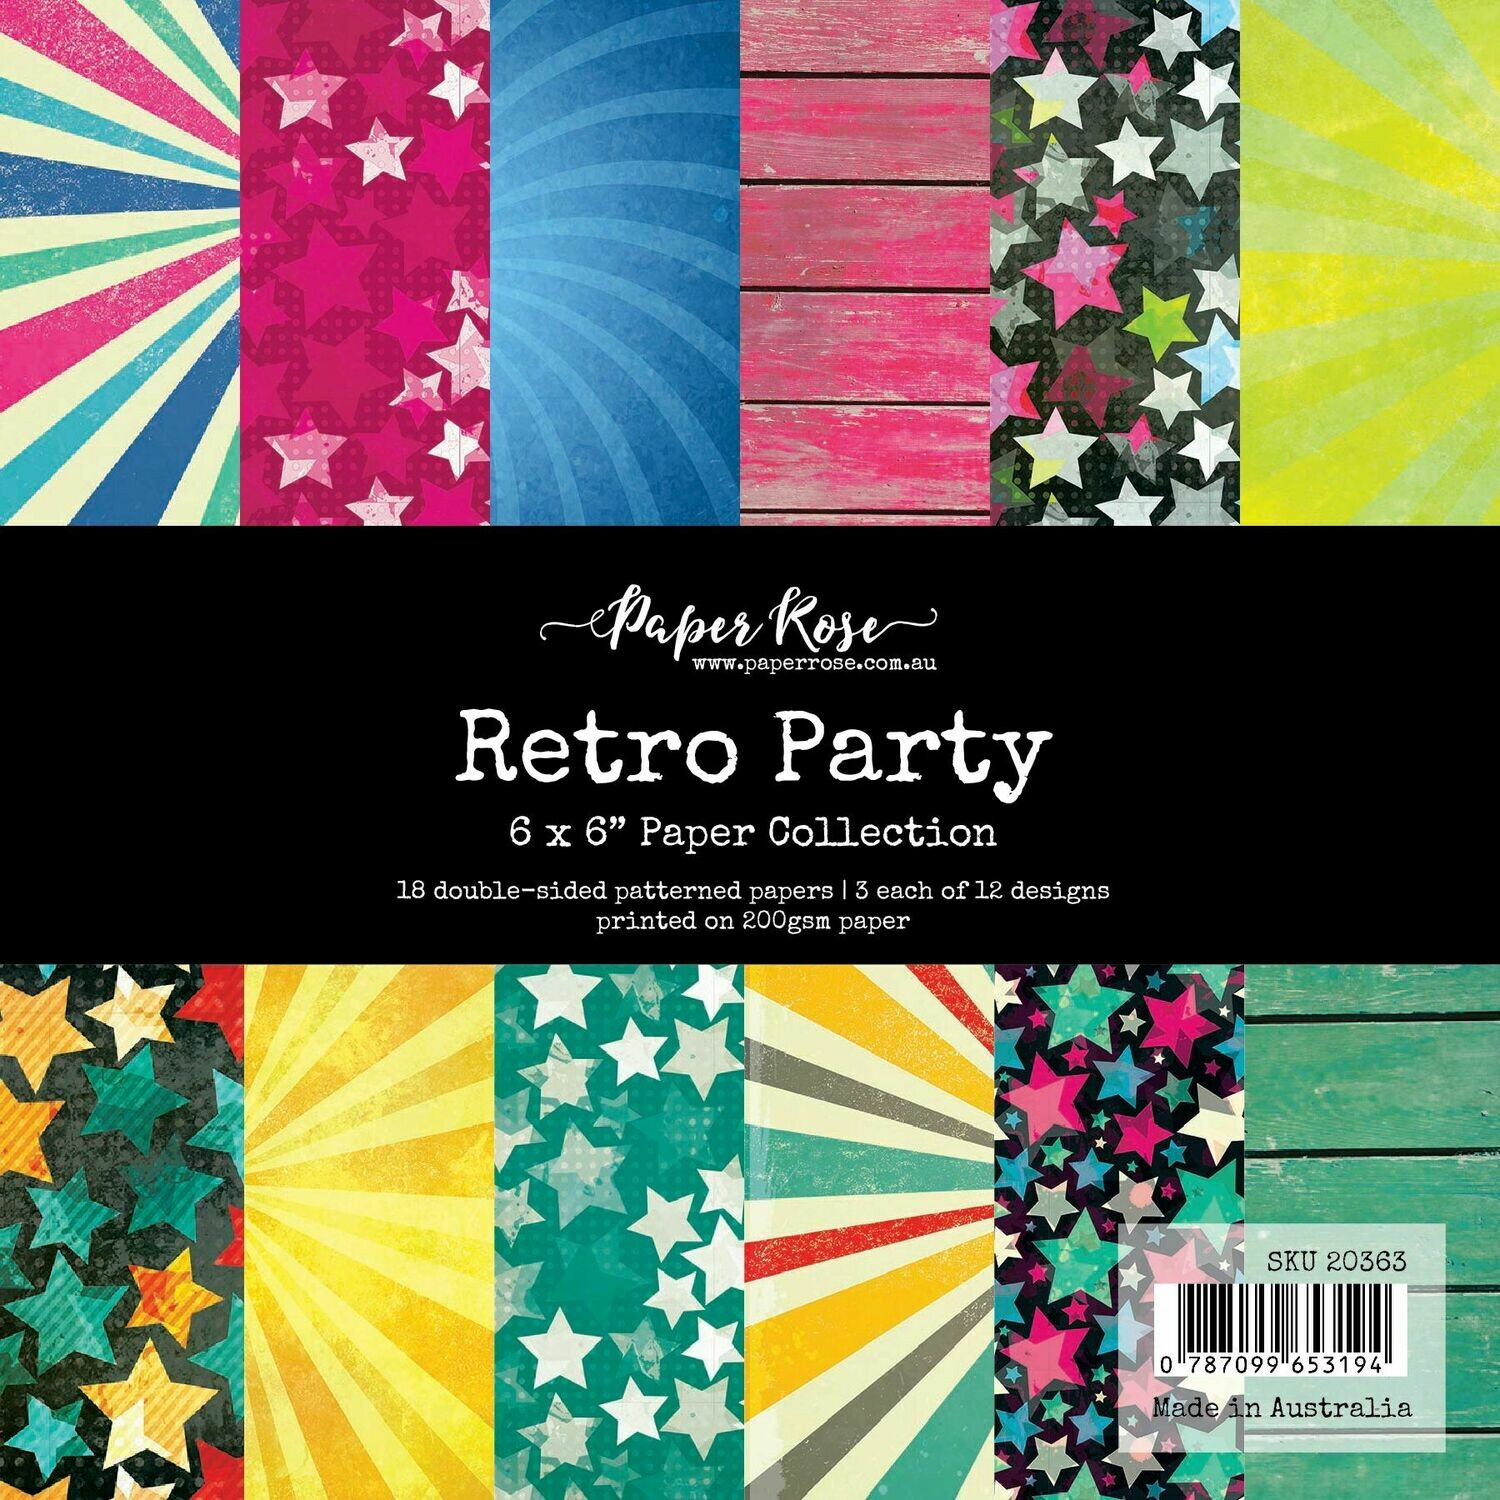 "Paper Rose - Retro Party -  6"" x 6"" Paper Collection"